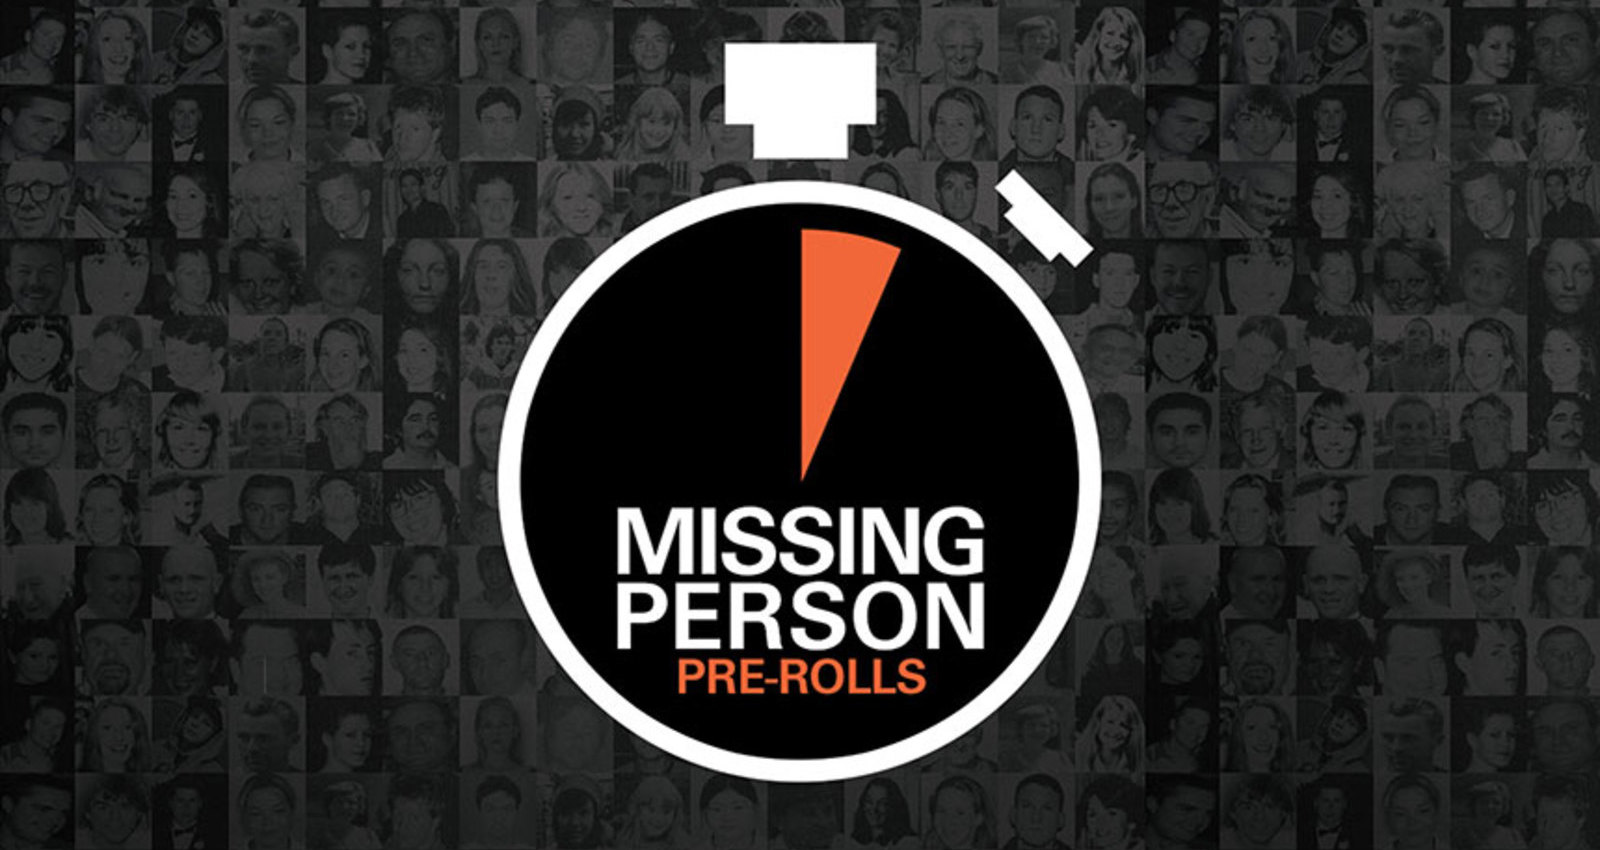 Missing Person Pre-Rolls